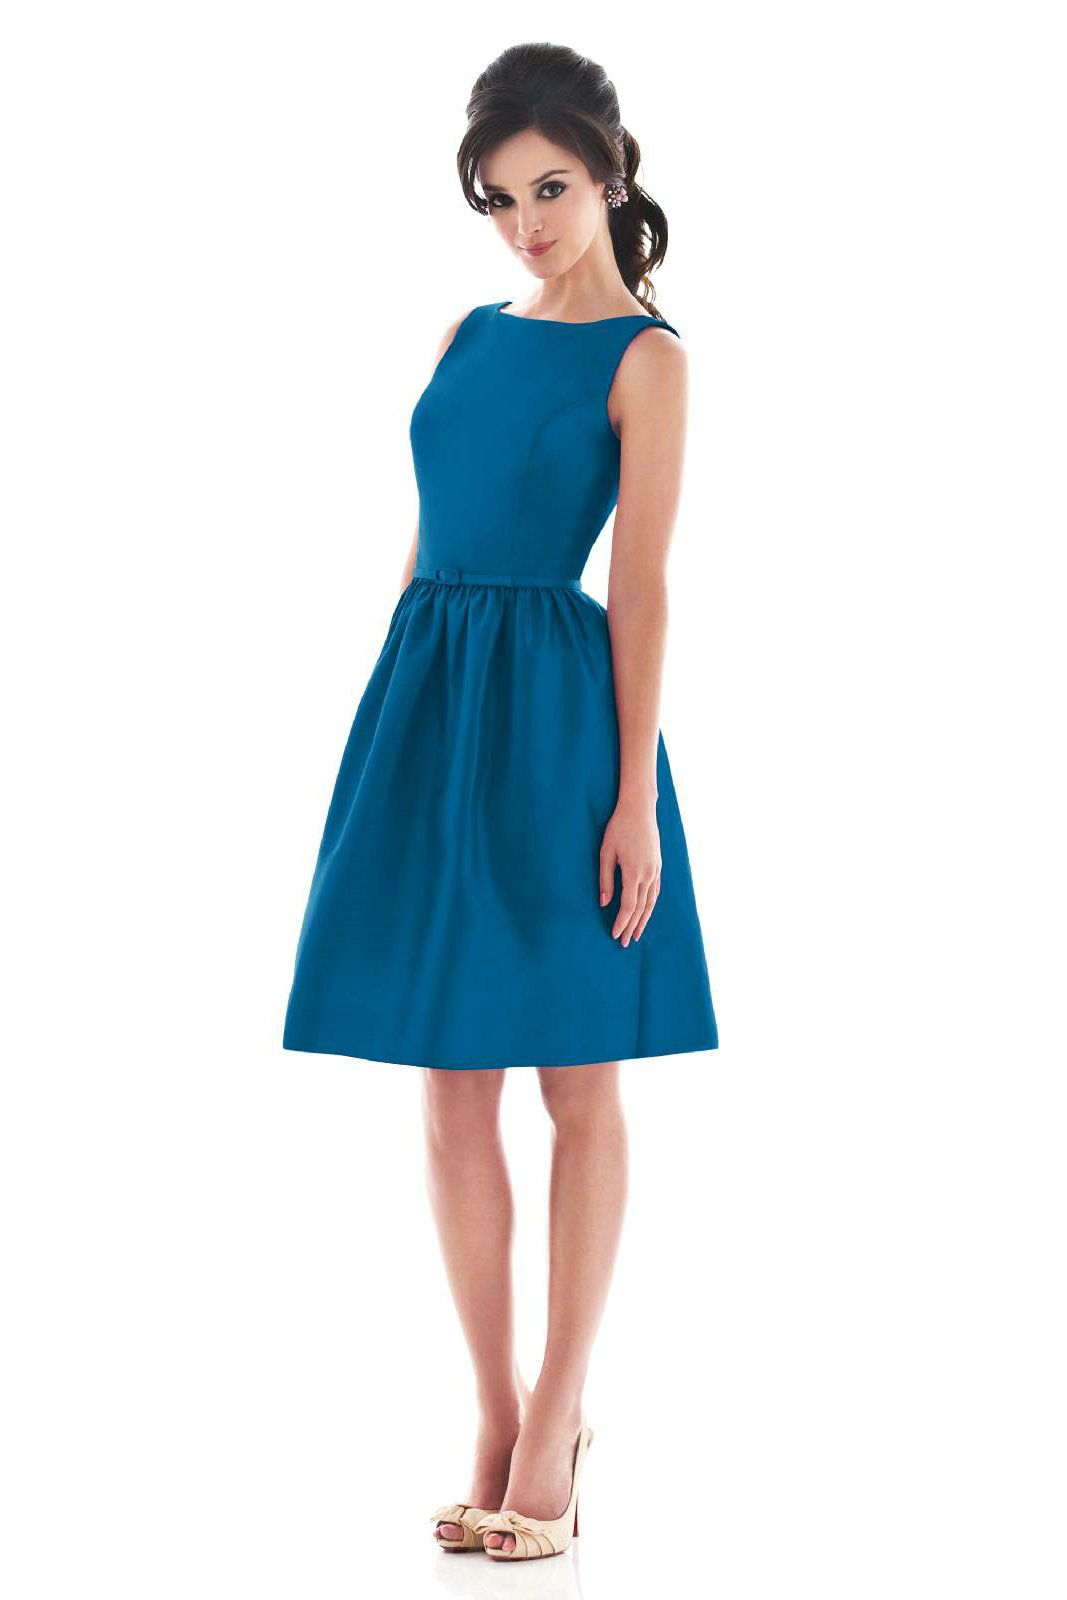 Pin by wary wolf on i look good and i know it pinterest feminine the alfred sung bridesmaid collection offers fresh contemporary bridesmaid dresses while keeping your budget in mind ombrellifo Gallery